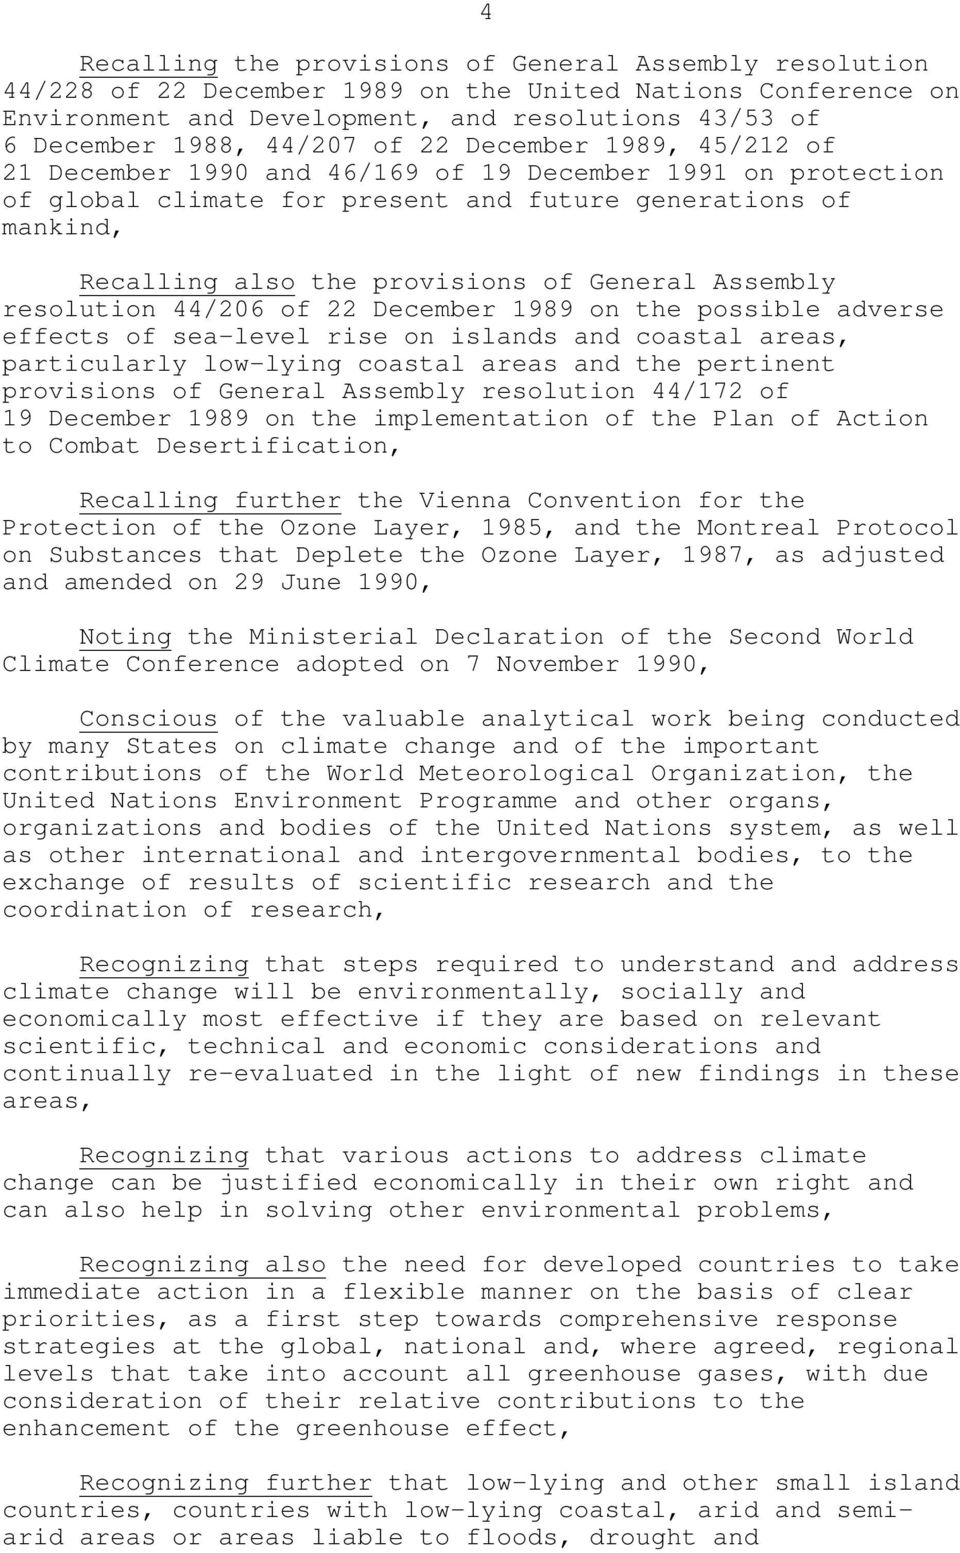 Assembly resolution 44/206 of 22 December 1989 on the possible adverse effects of sea-level rise on islands and coastal areas, particularly low-lying coastal areas and the pertinent provisions of